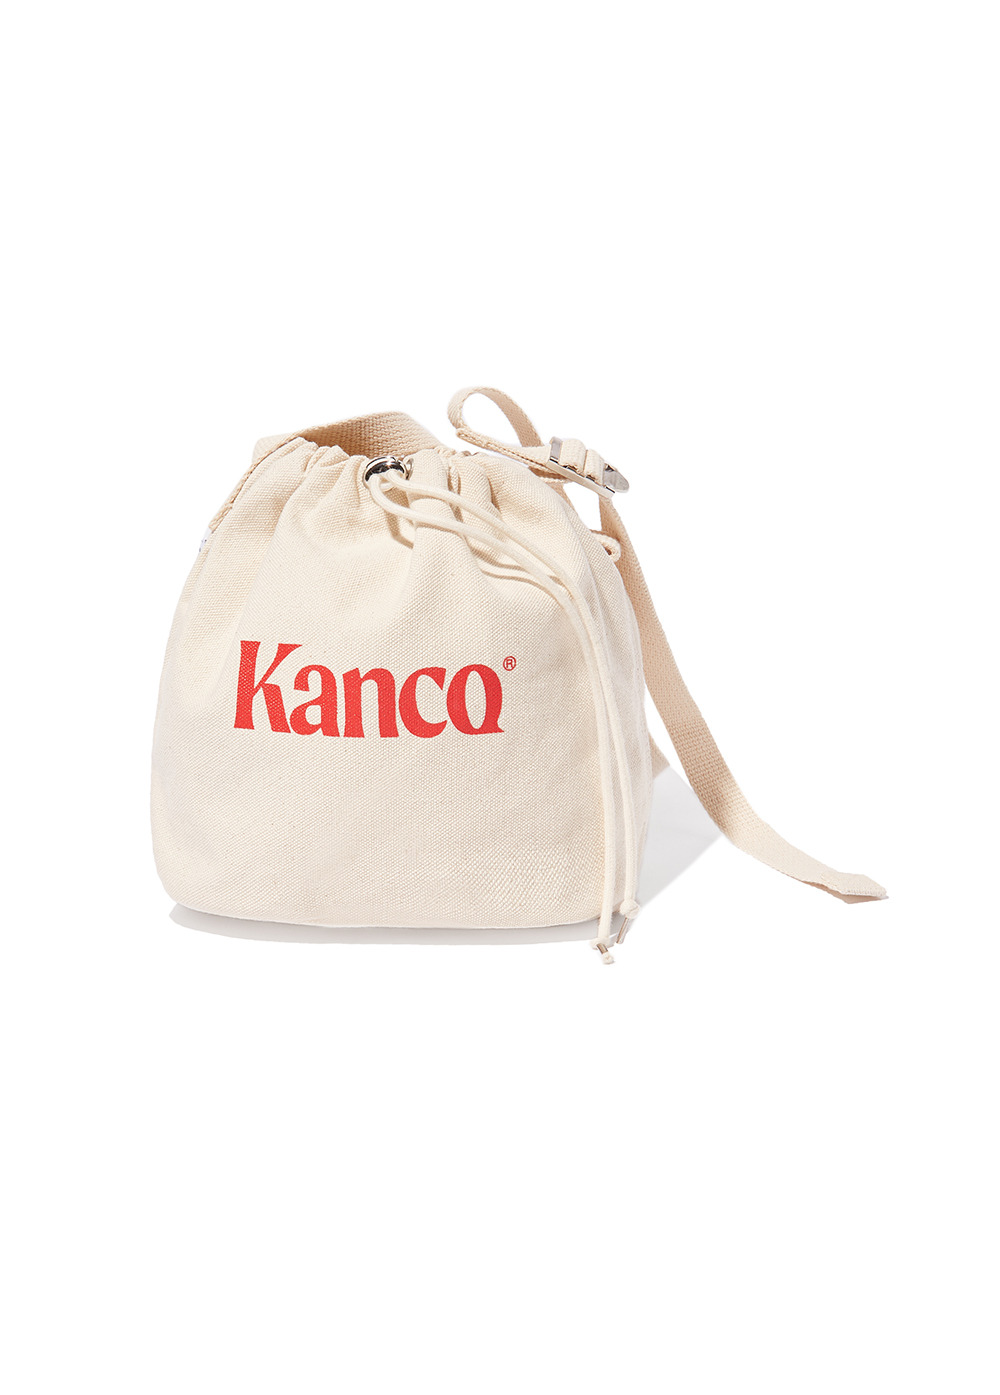 KANCO CANVAS CROSS BASKET BAG ivory